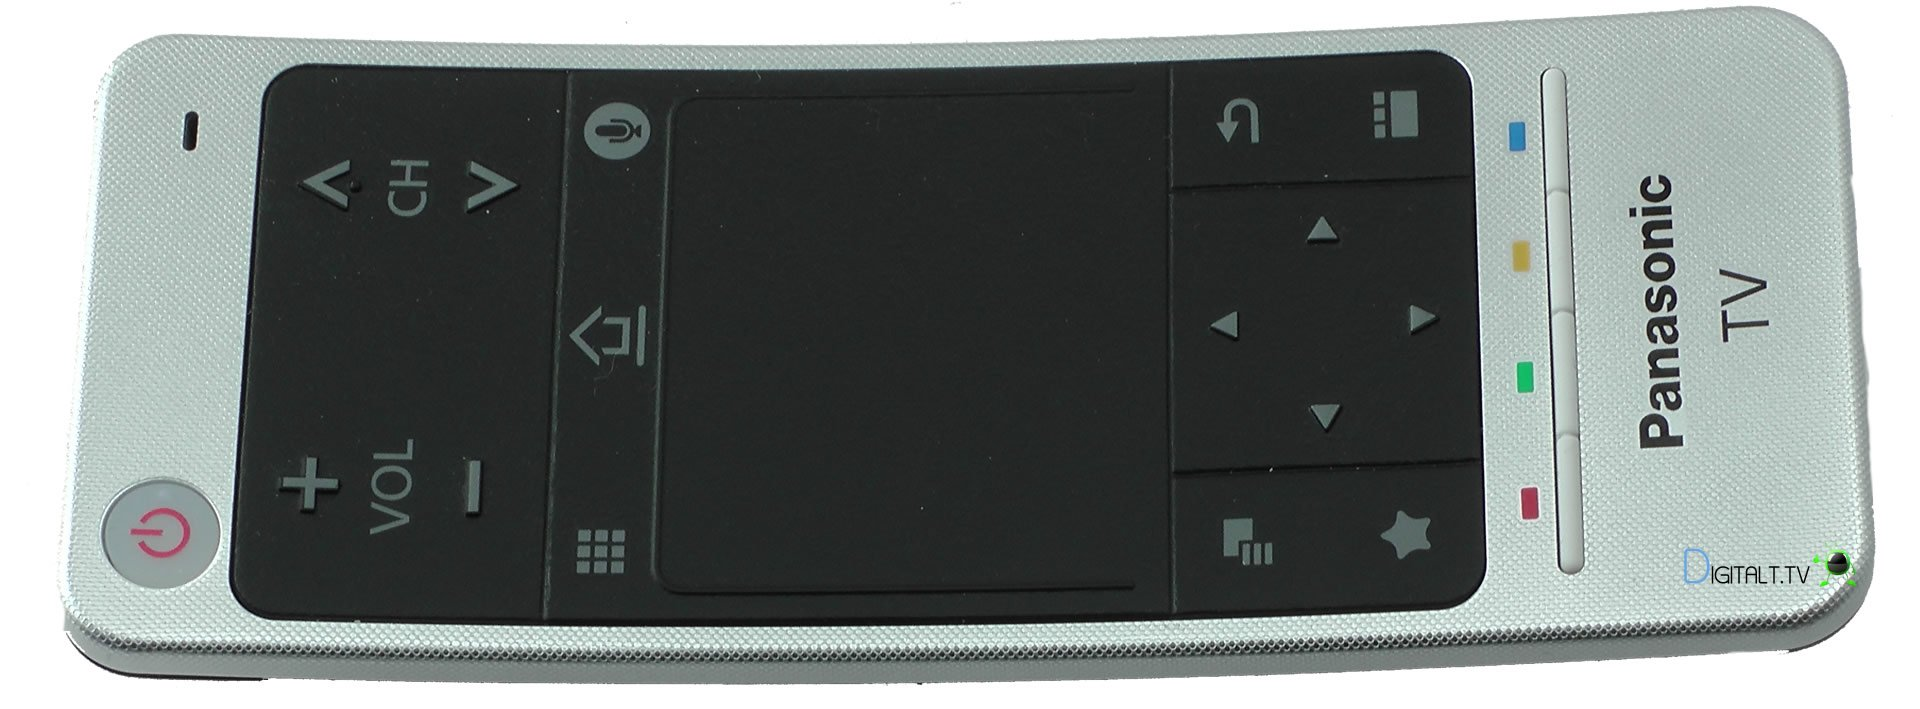 panasonic-cx750-remote-mindre